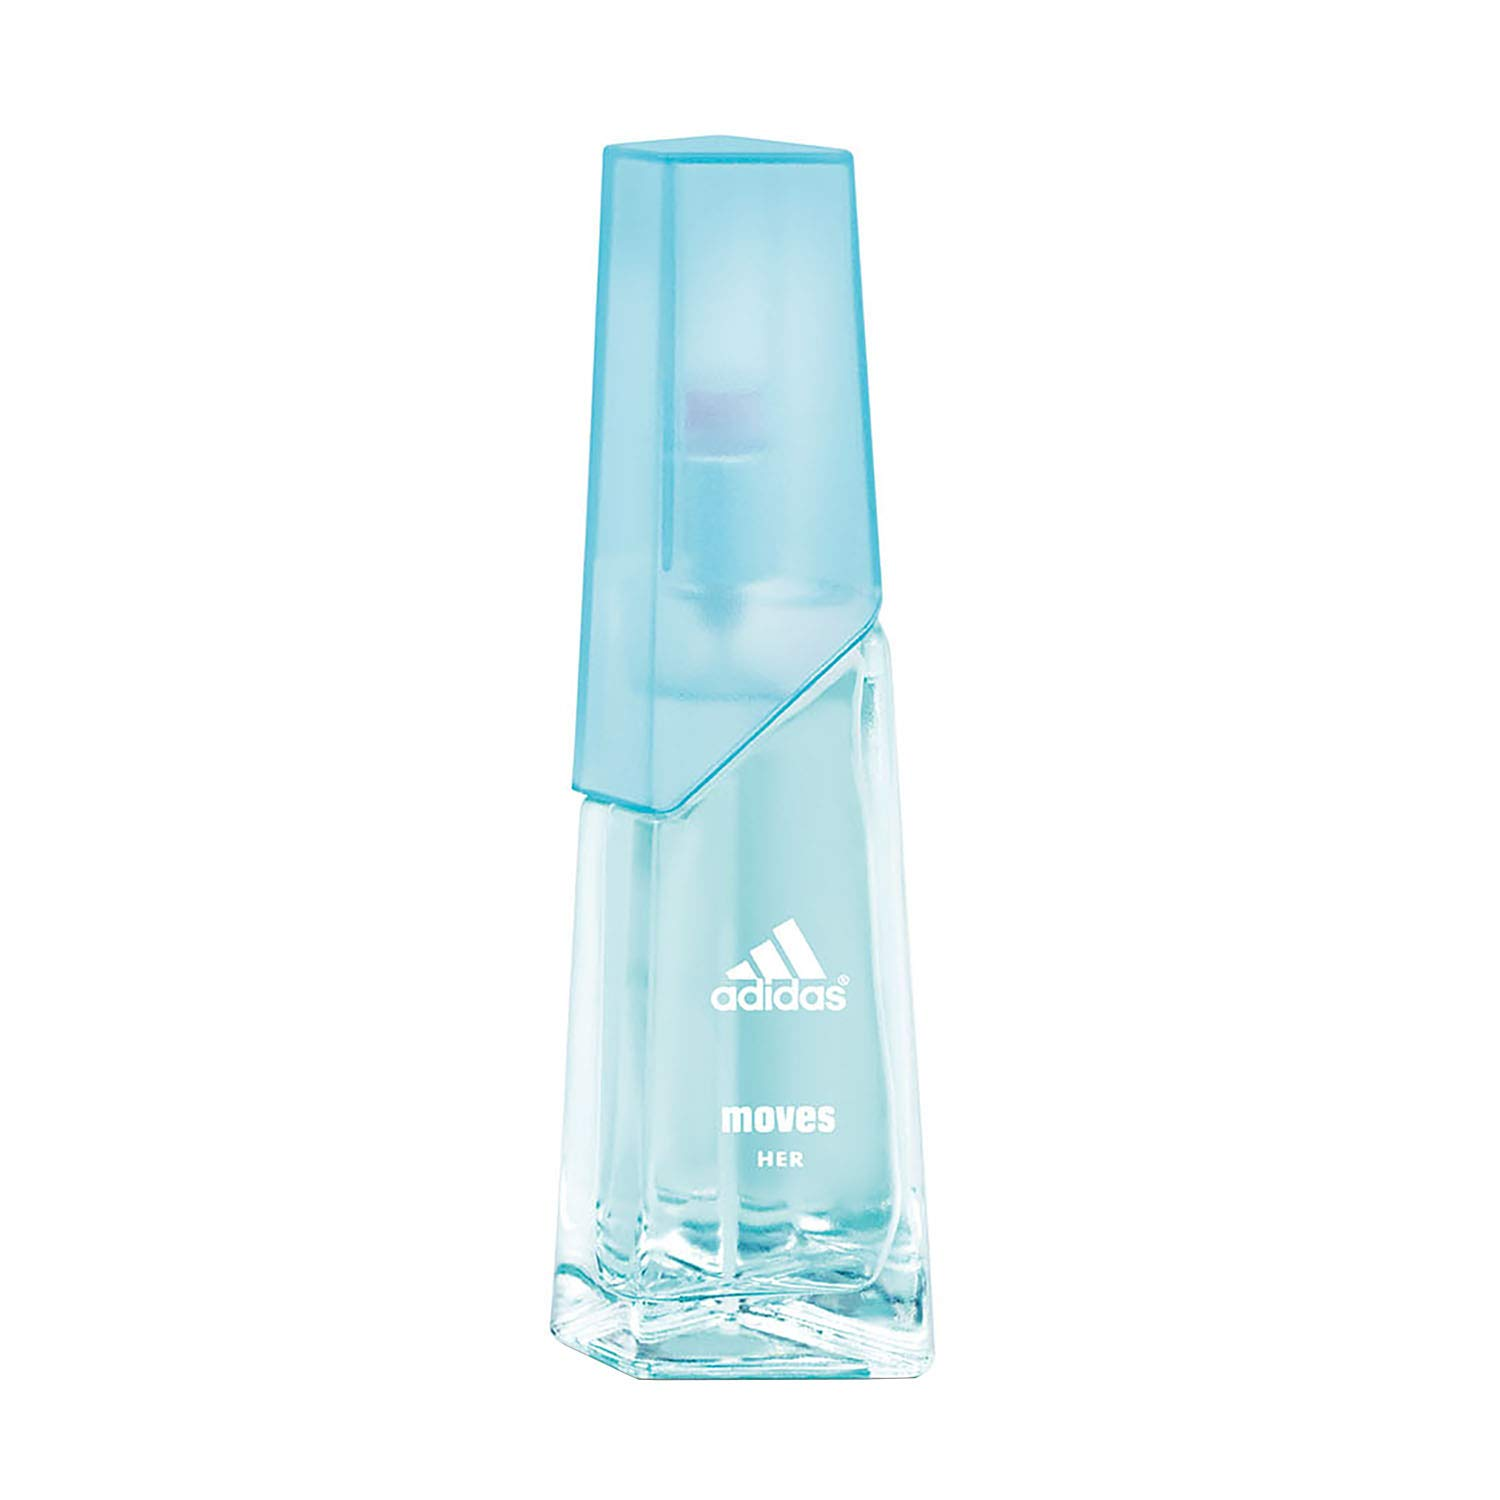 Adidas Moves by Coty for Women 1.0 oz Eau de Toilette Spray (Unboxed)